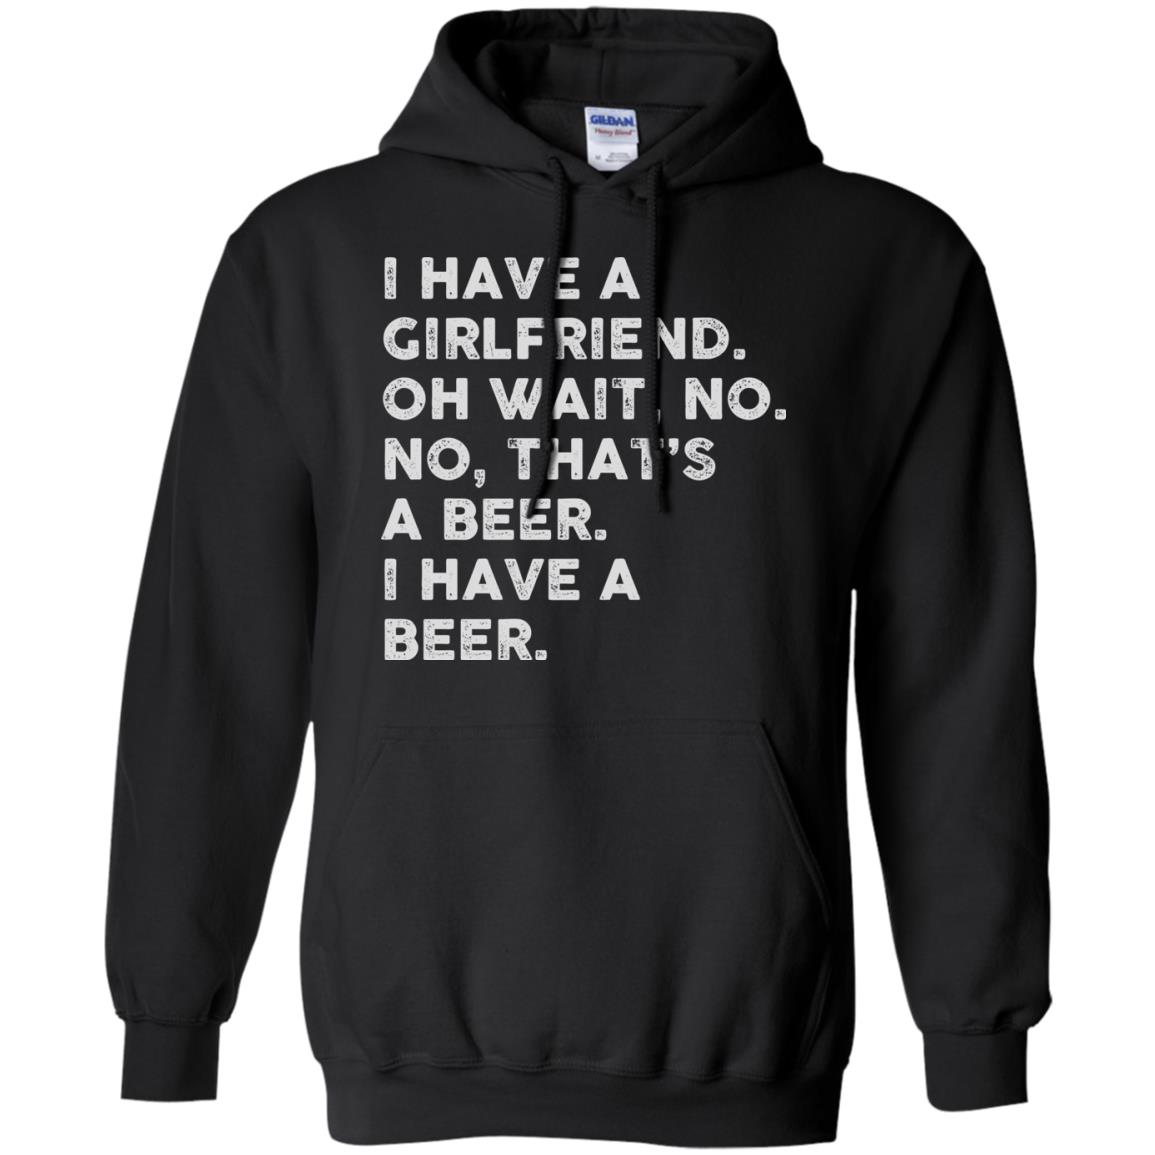 image 2183 - I have a girlfriend oh wait No No that's a beer shirt, hoodie